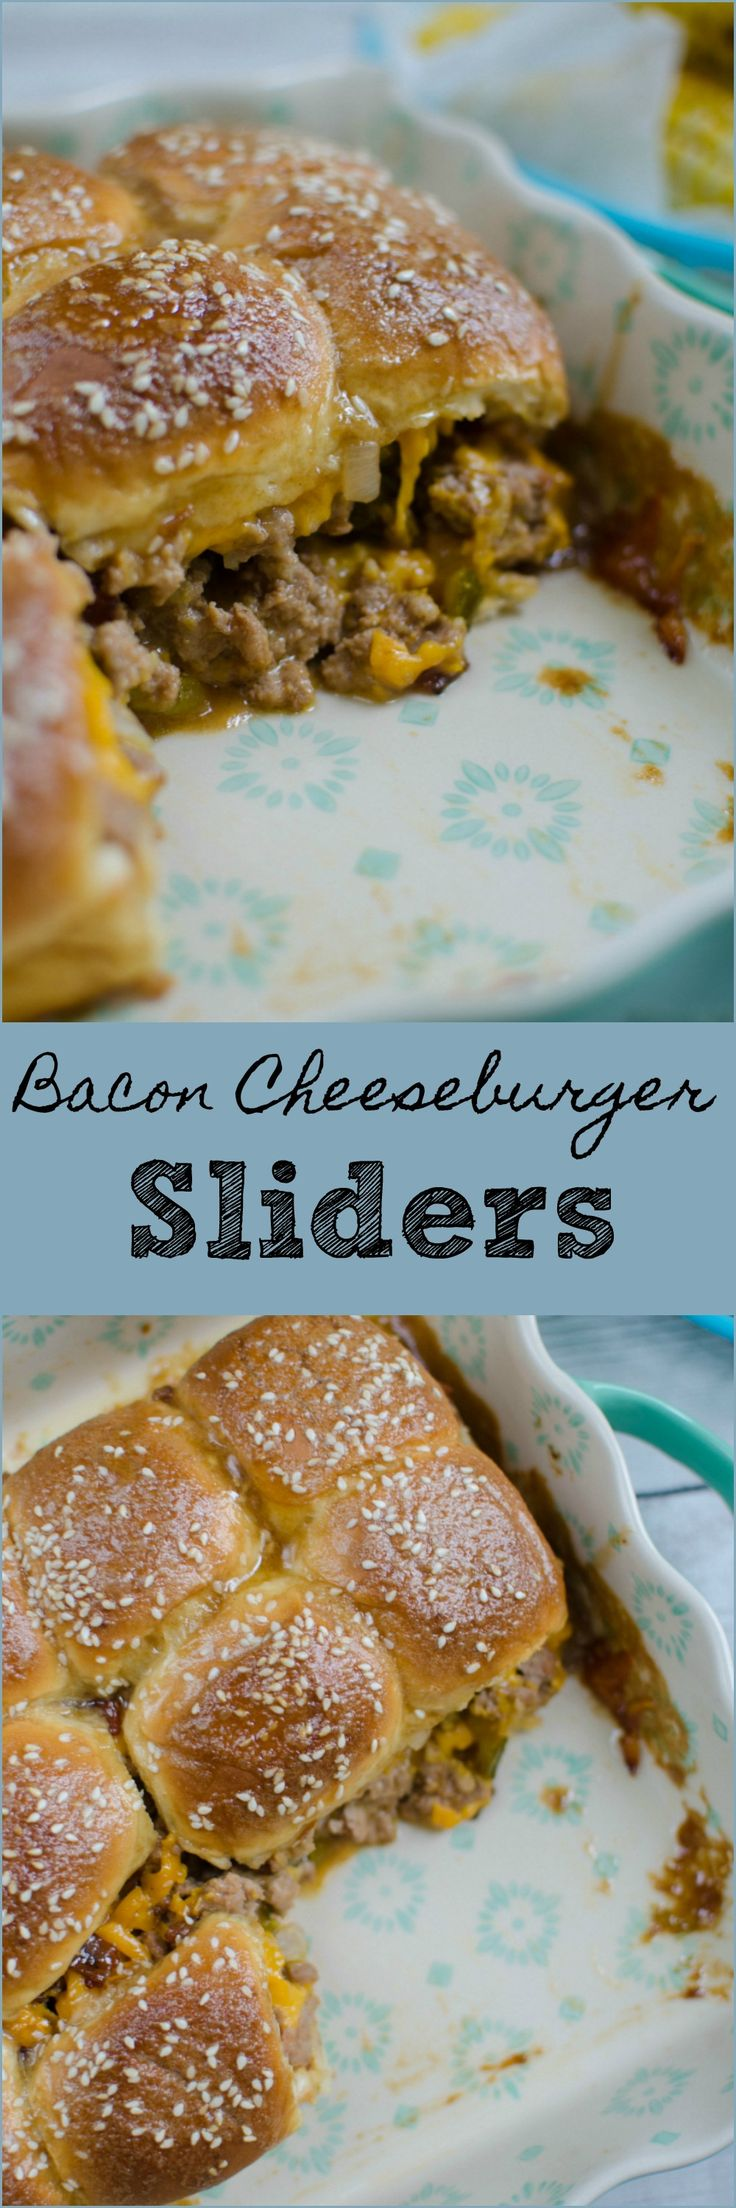 Bacon Cheeseburger Sliders - easy way to serve burgers to a crowd! Everything you love about burgers on Hawaiian rolls and covered in the most delicious glaze!